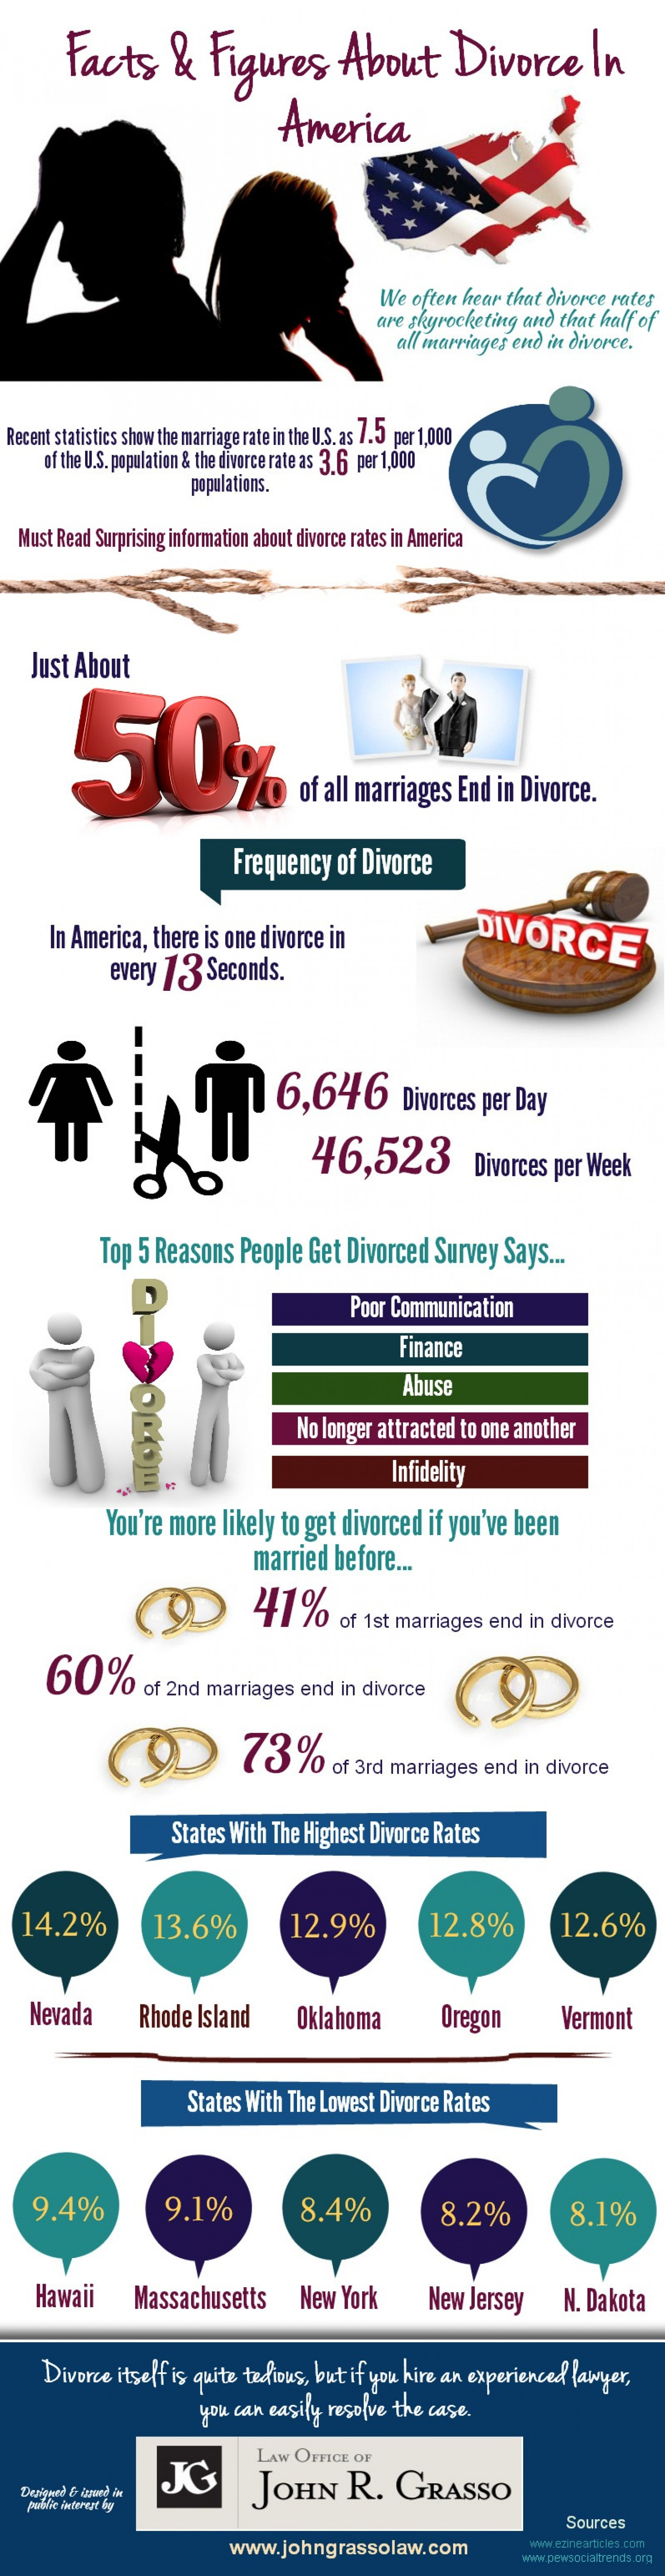 Facts & Figure about Divorce in America Infographic